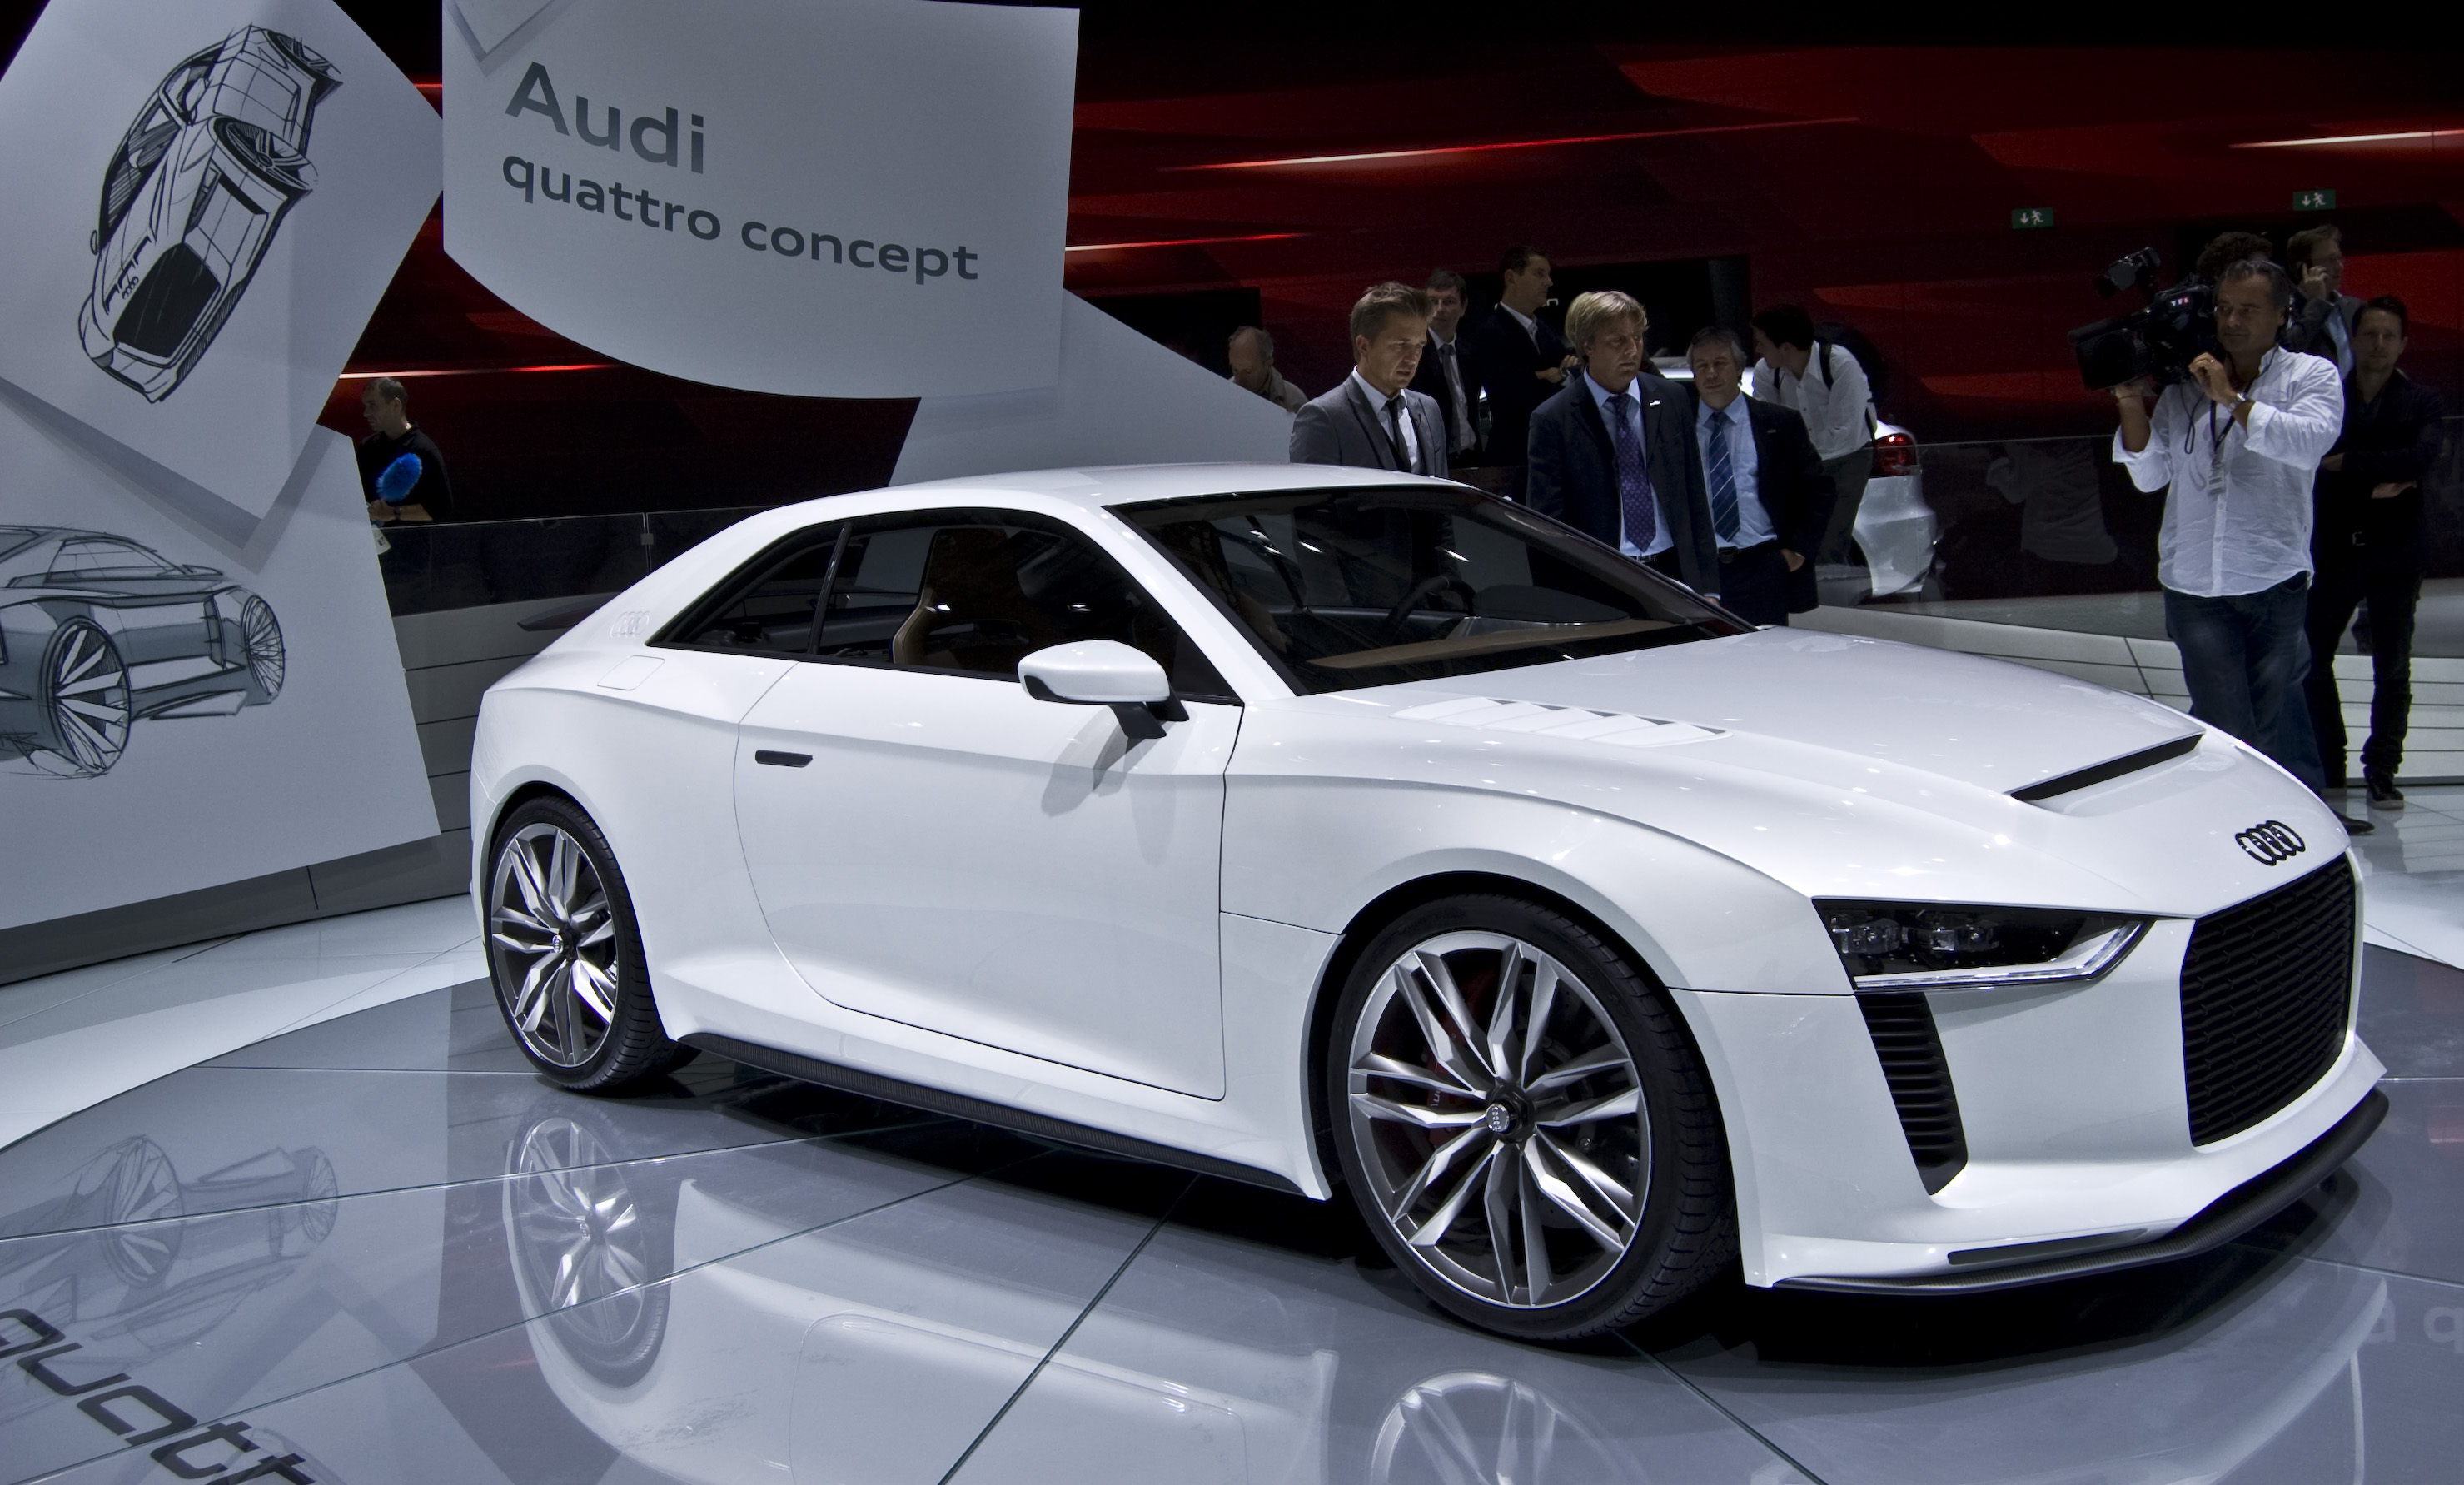 File:Audi Quattro Concept - Flickr - David Villarreal Fernández (1 ...